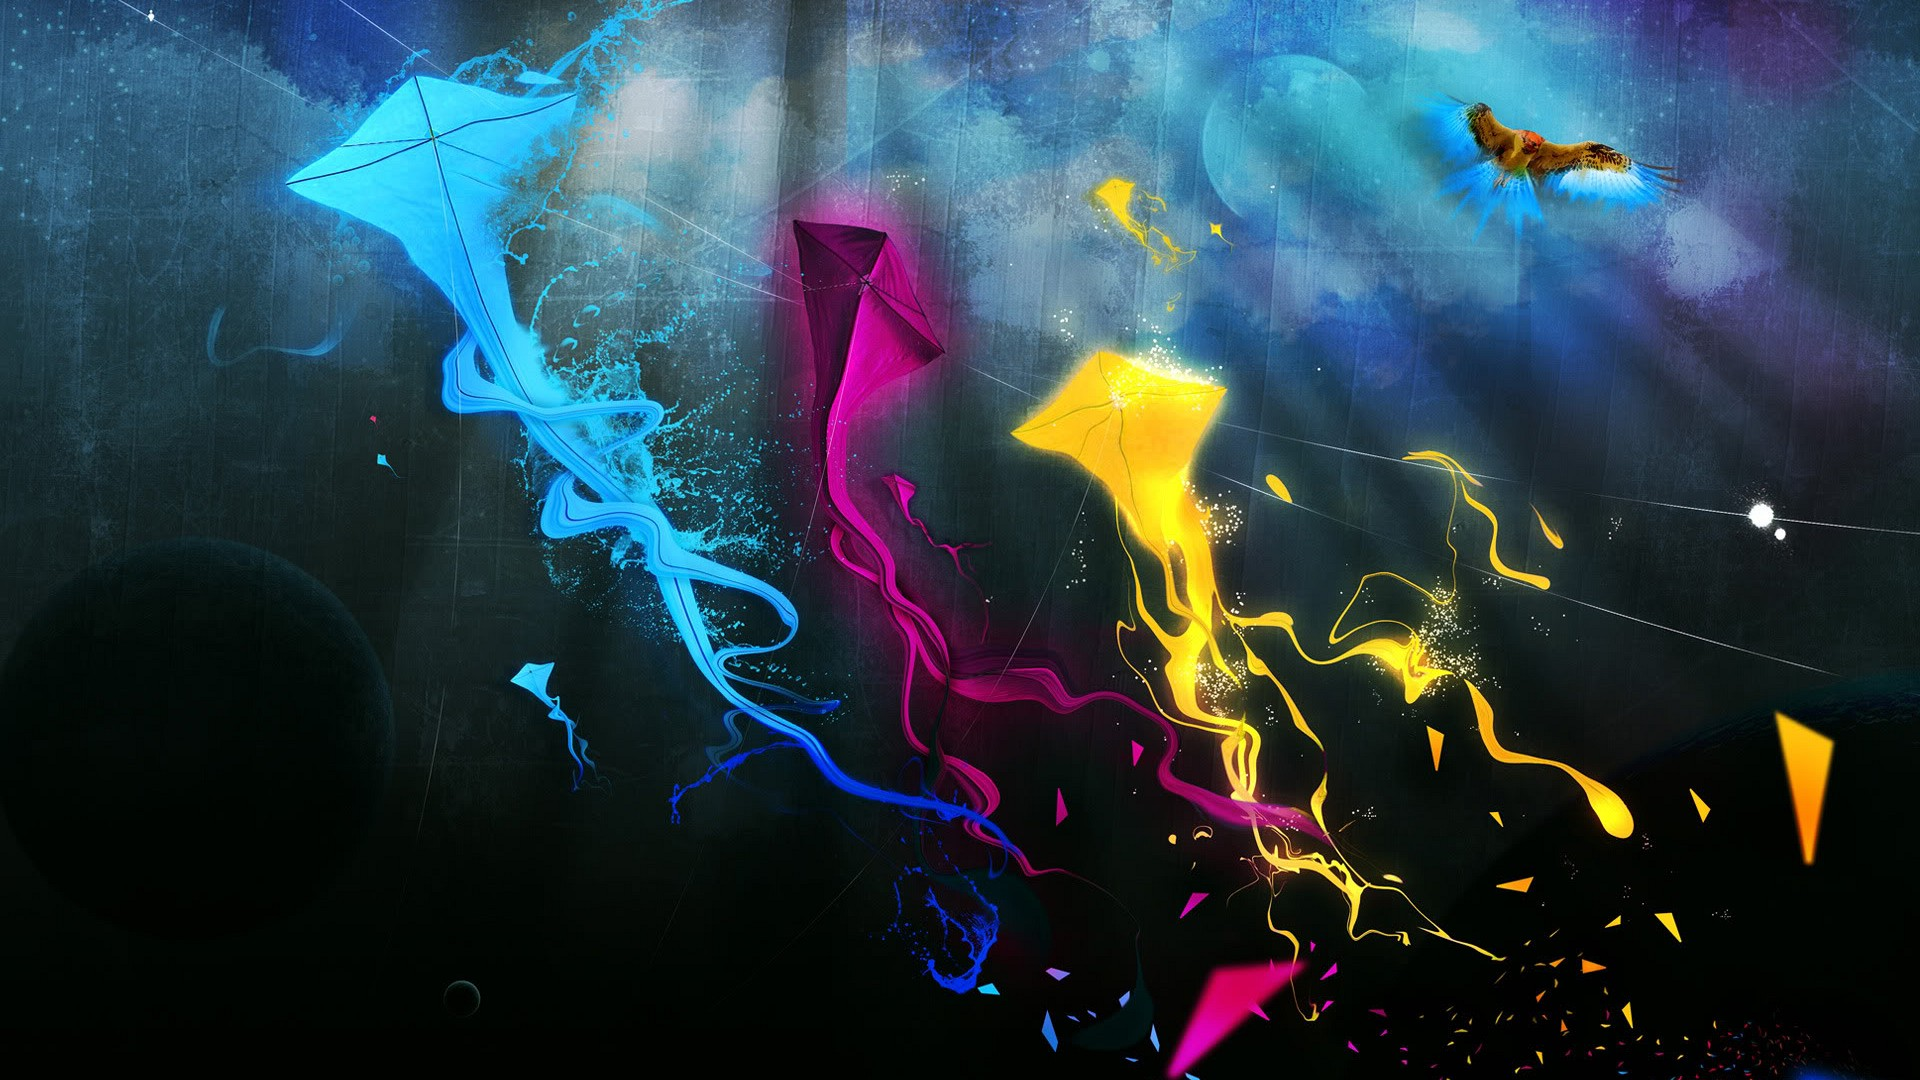 Hd Abstract 720p Hd 3d Wallpaper 1080p 7801 Hd Wallpapers Background 1920x1080